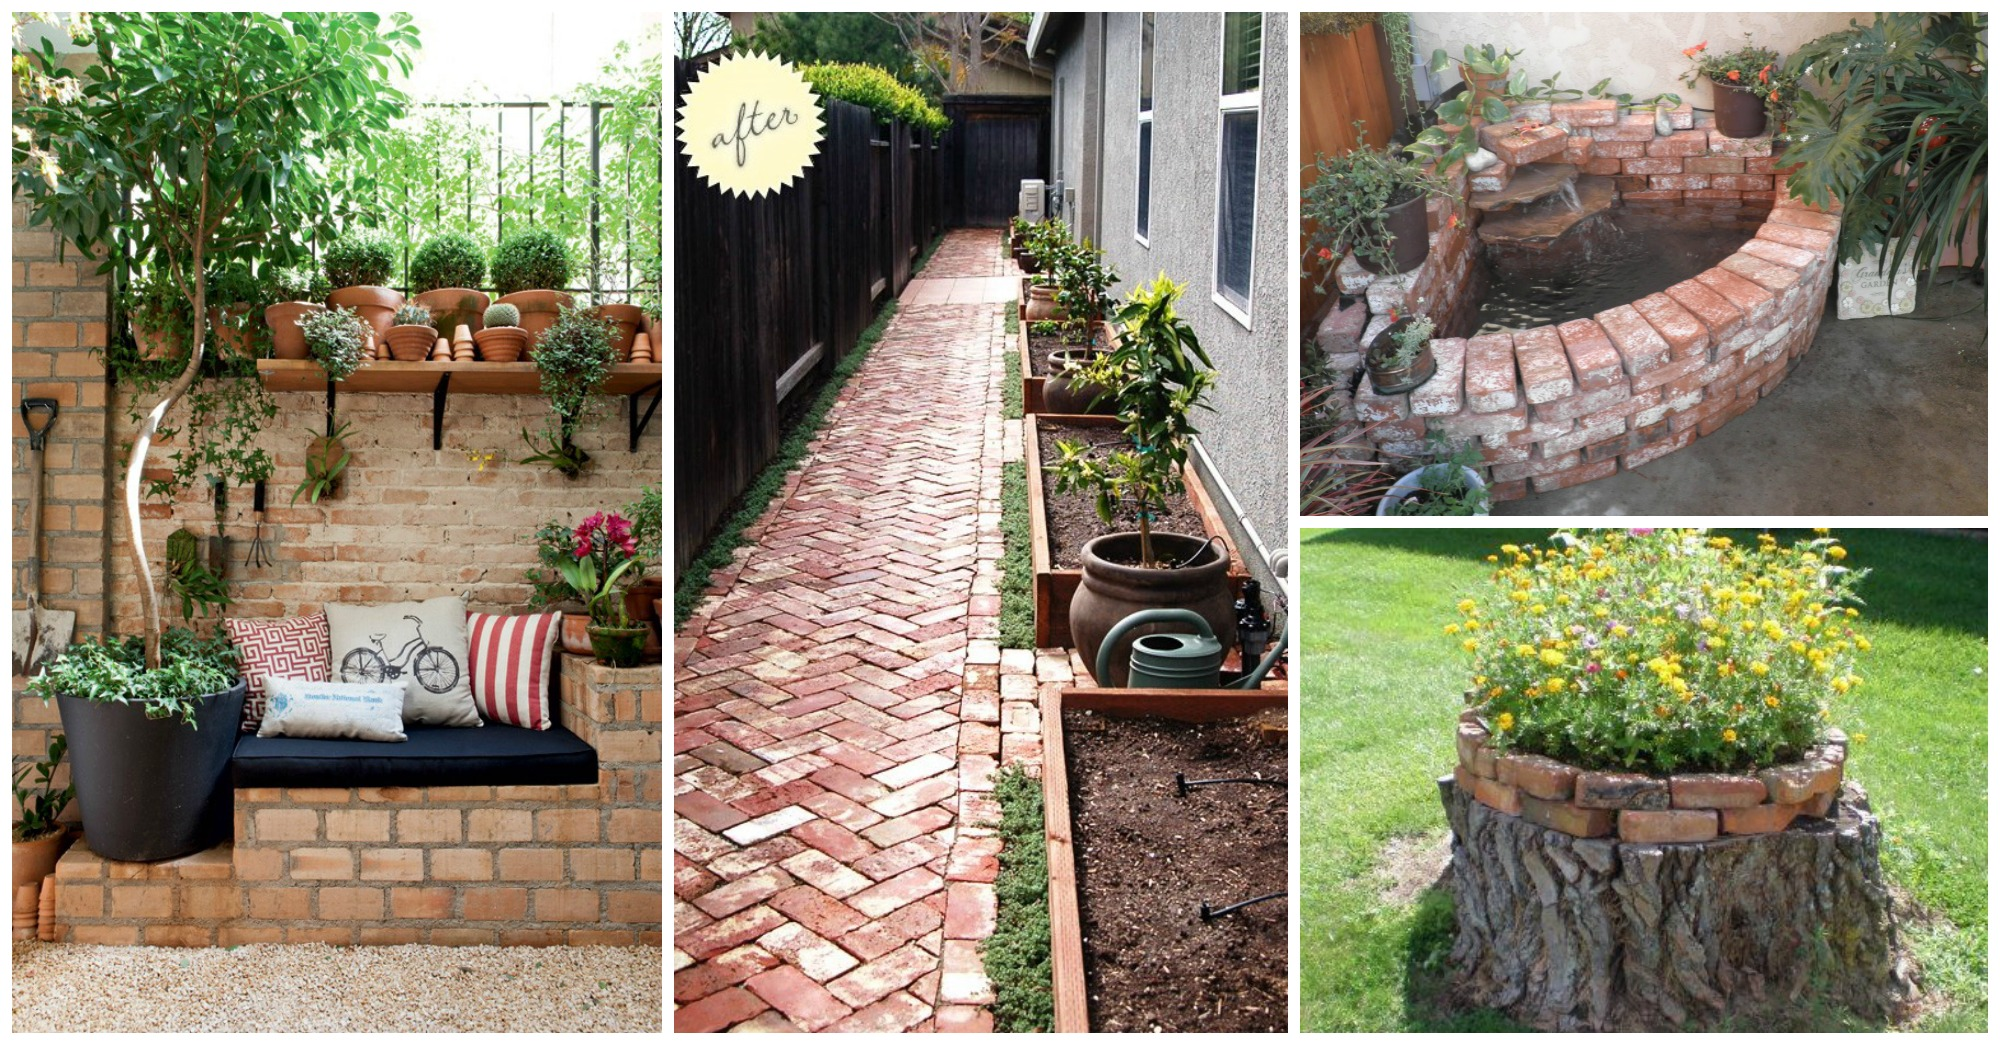 10 Brilliant Ideas to Decorate Your Yard With Bricks on Brick Ideas For Backyard id=77932